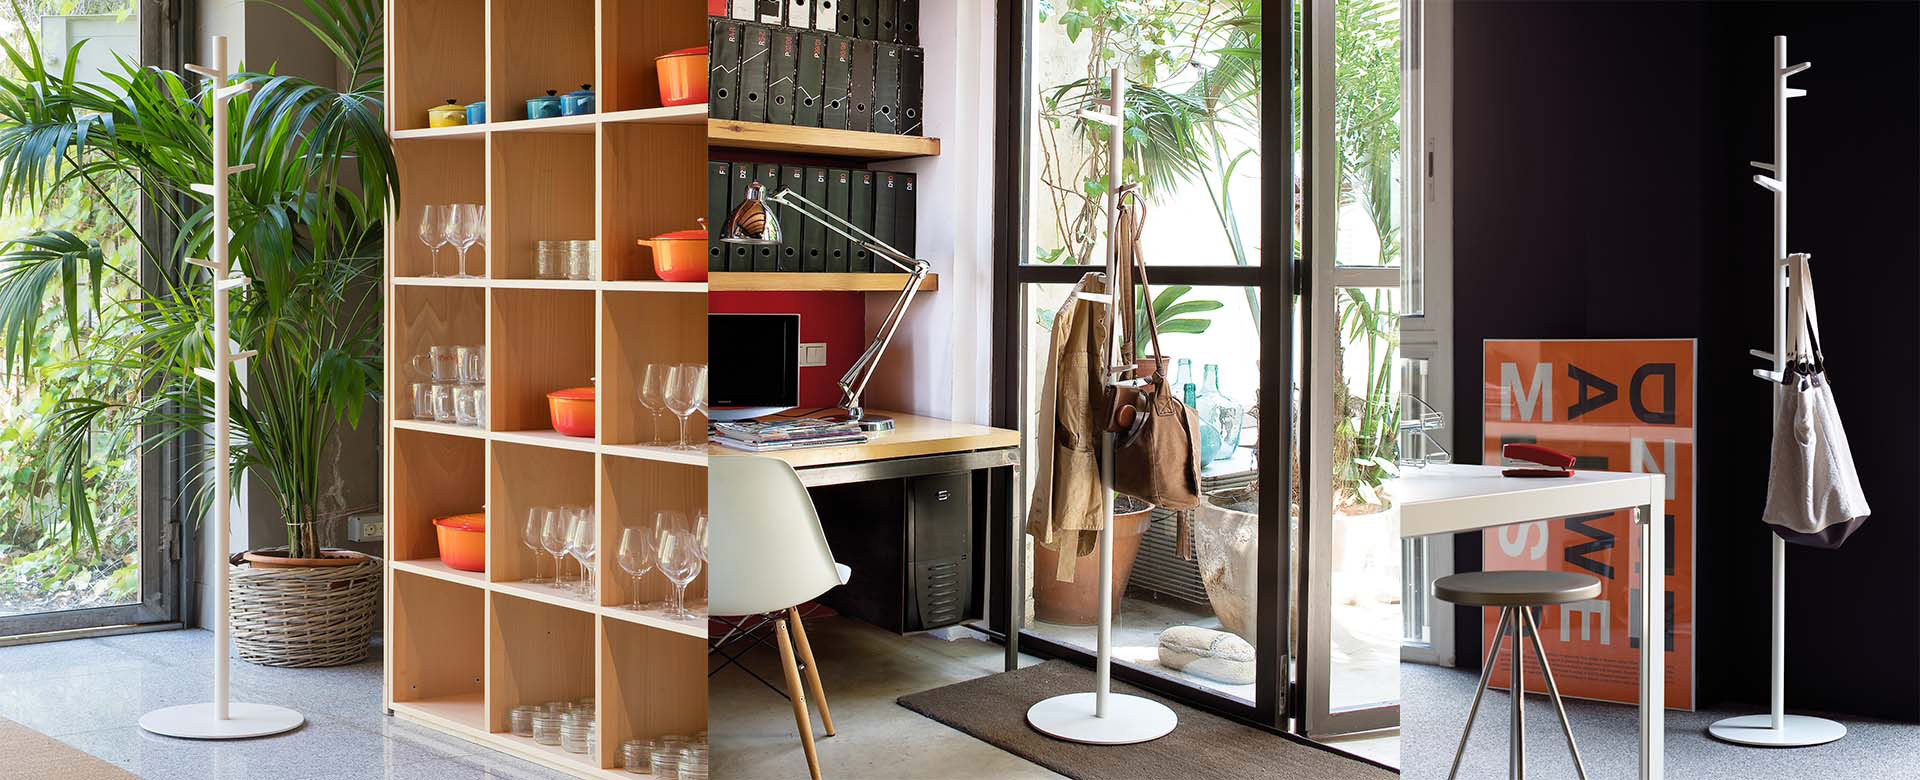 TAIGA Coat Trees & Umbrella Stands